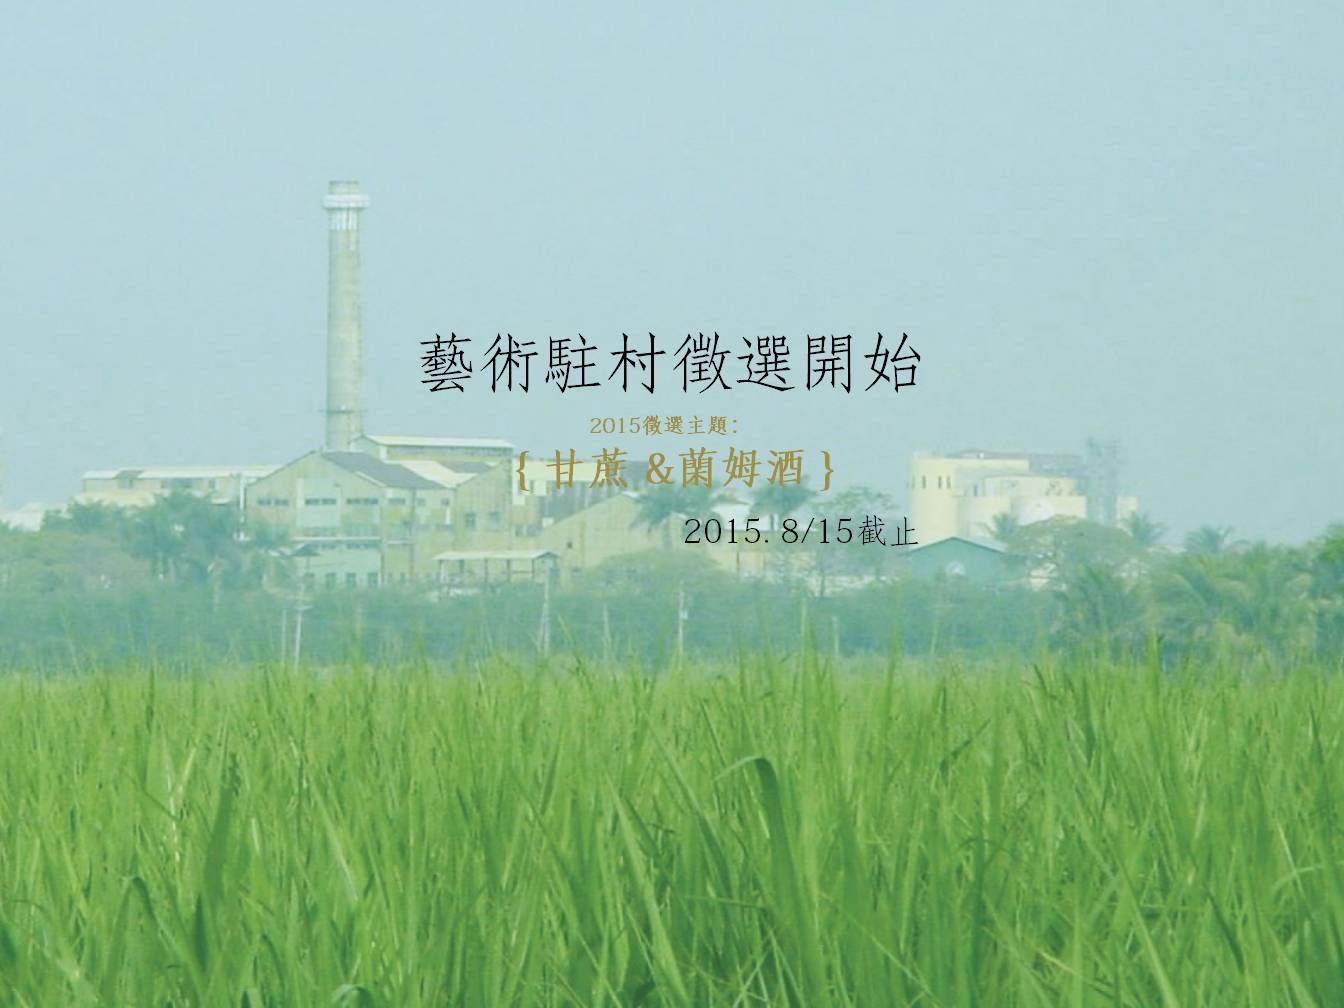 Kio-A-Thau Sugar Refinery Artist Village ARTIST-IN-RESIDENCE PROGRAM (Deadline: Aug 15)